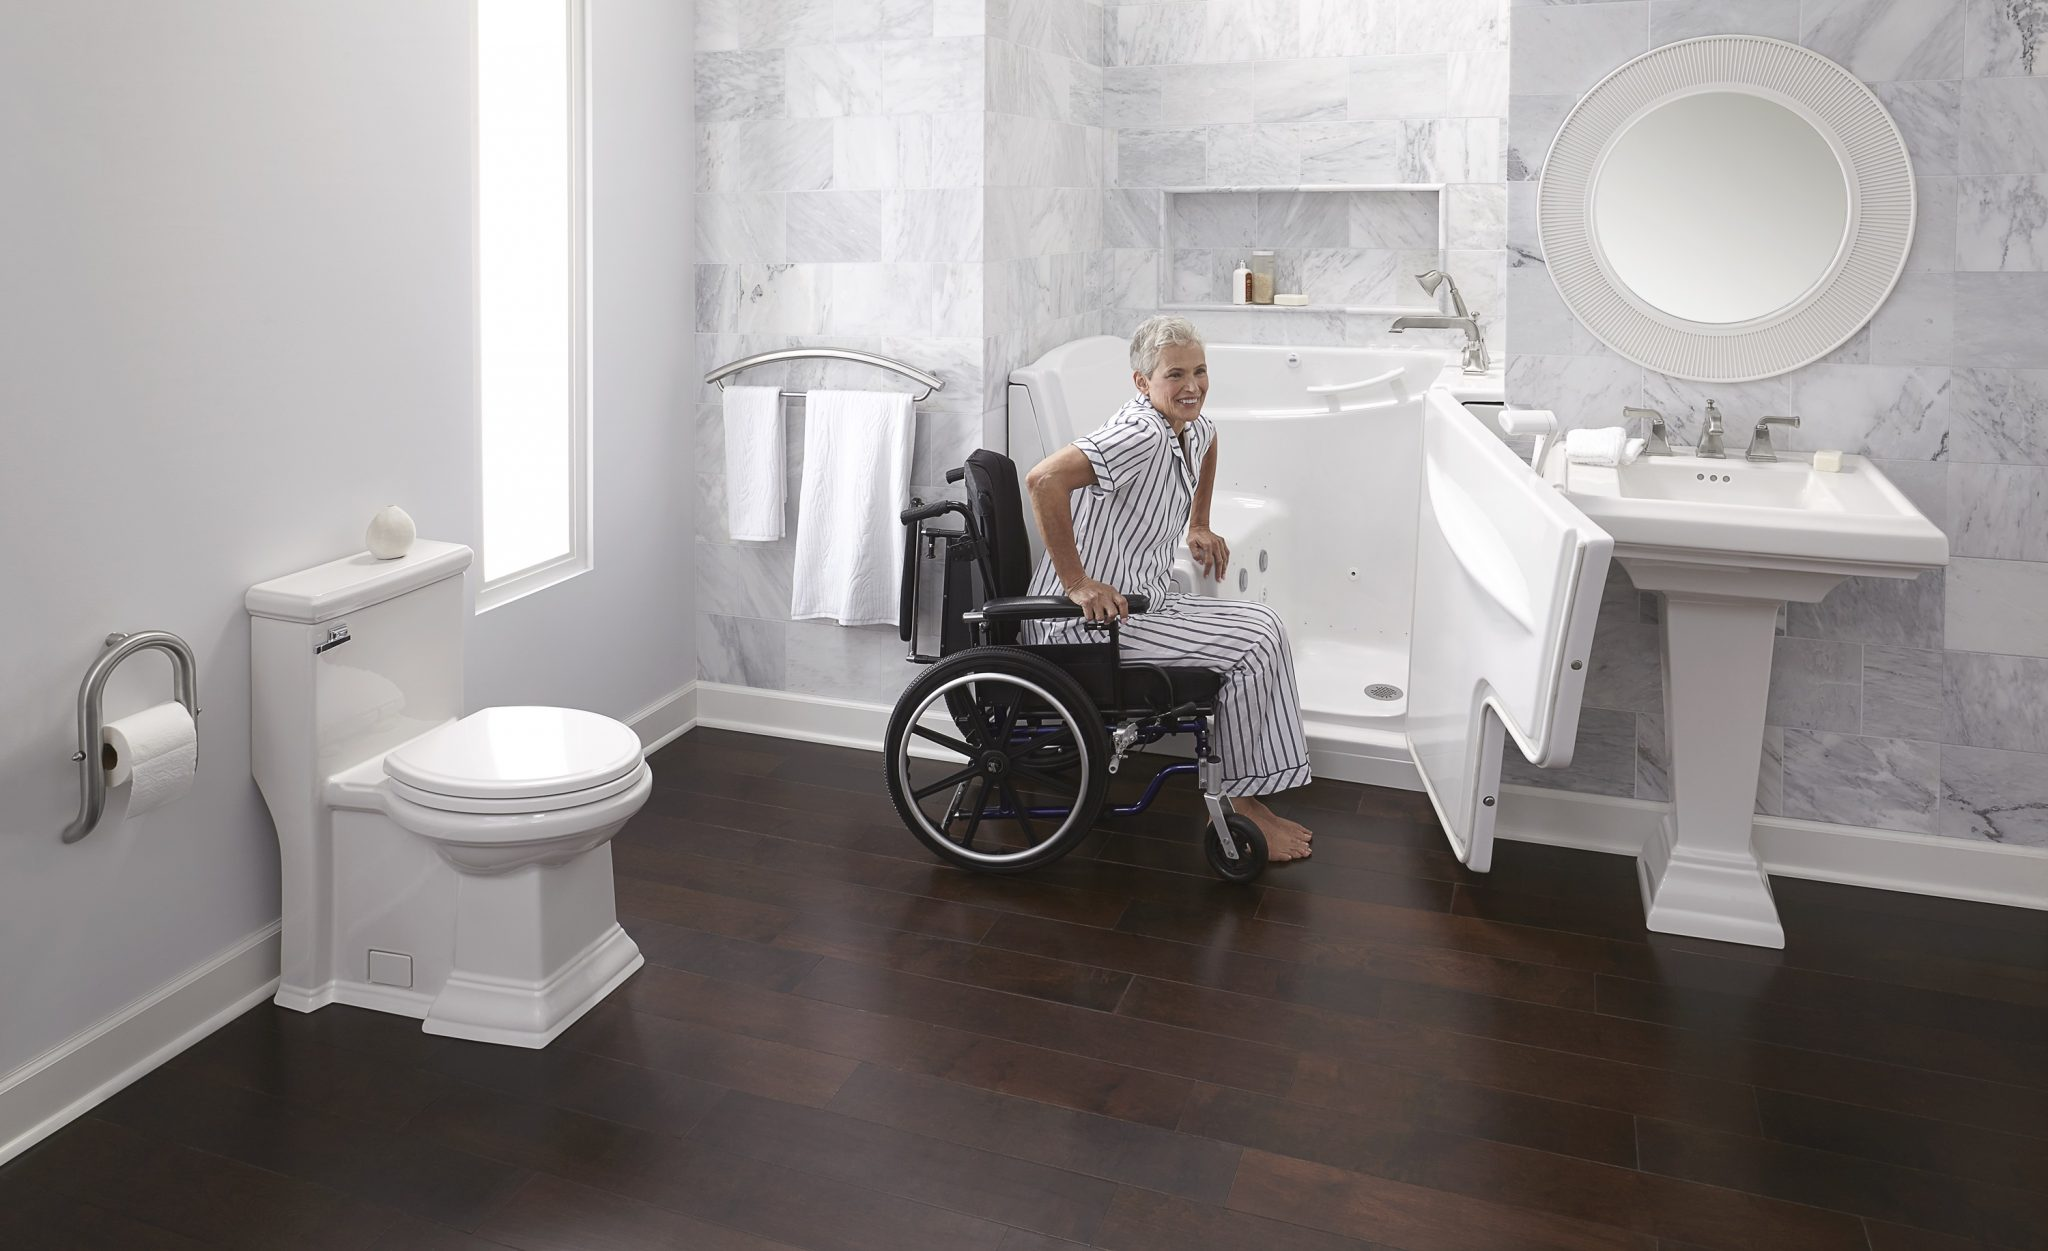 Walk-In Bathtubs May Not Be A Good Purchase?